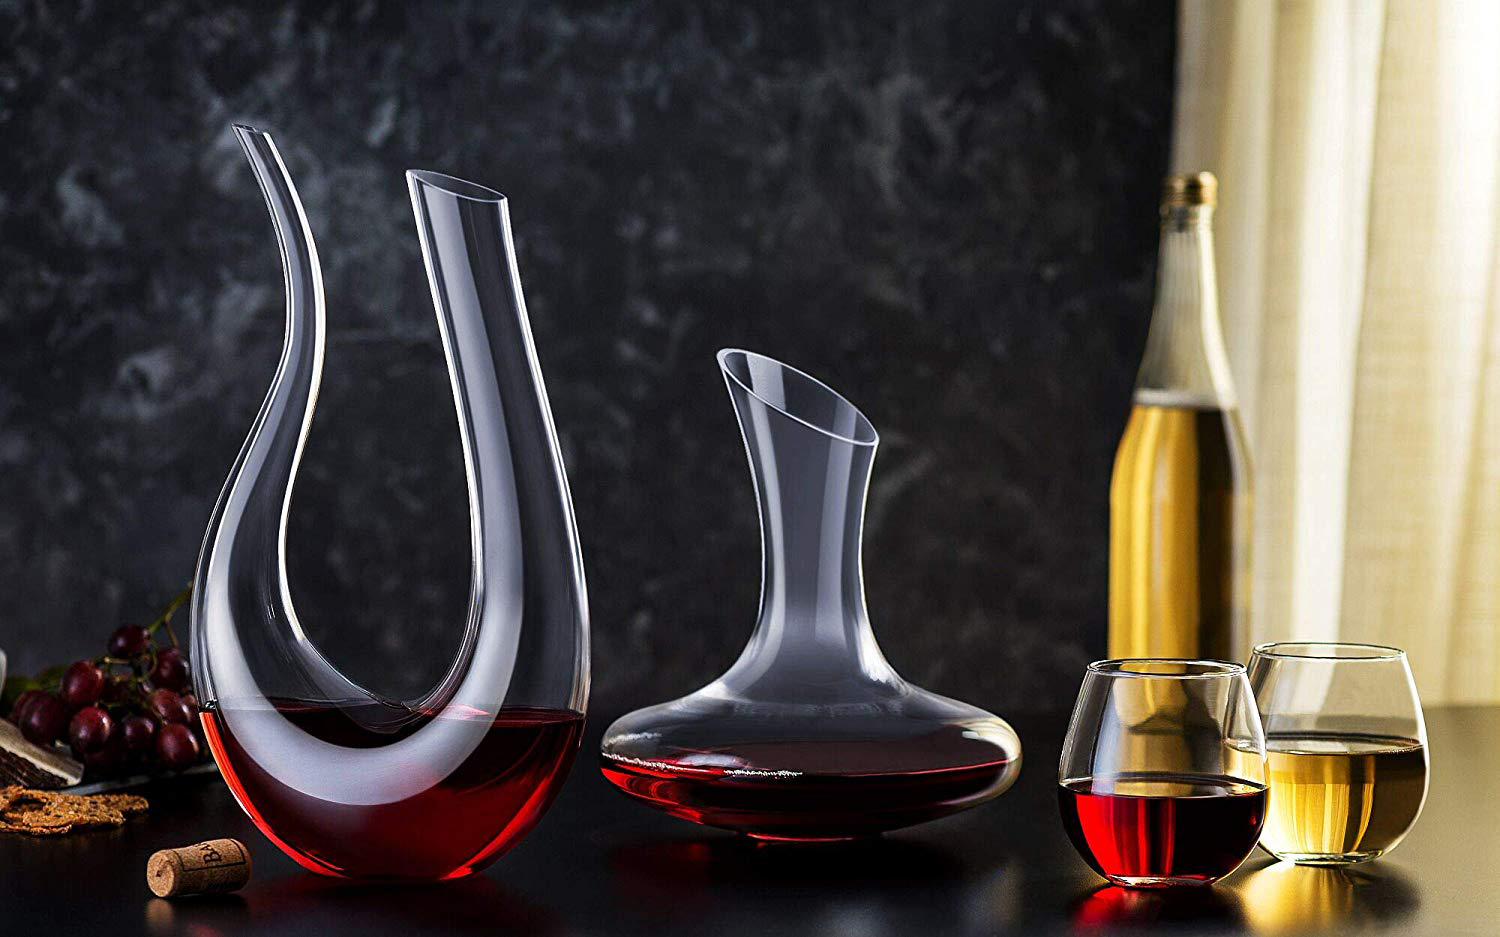 These Elegant Stemless Wine Glasses Have Over 1,000 Rave Reviews on Amazon